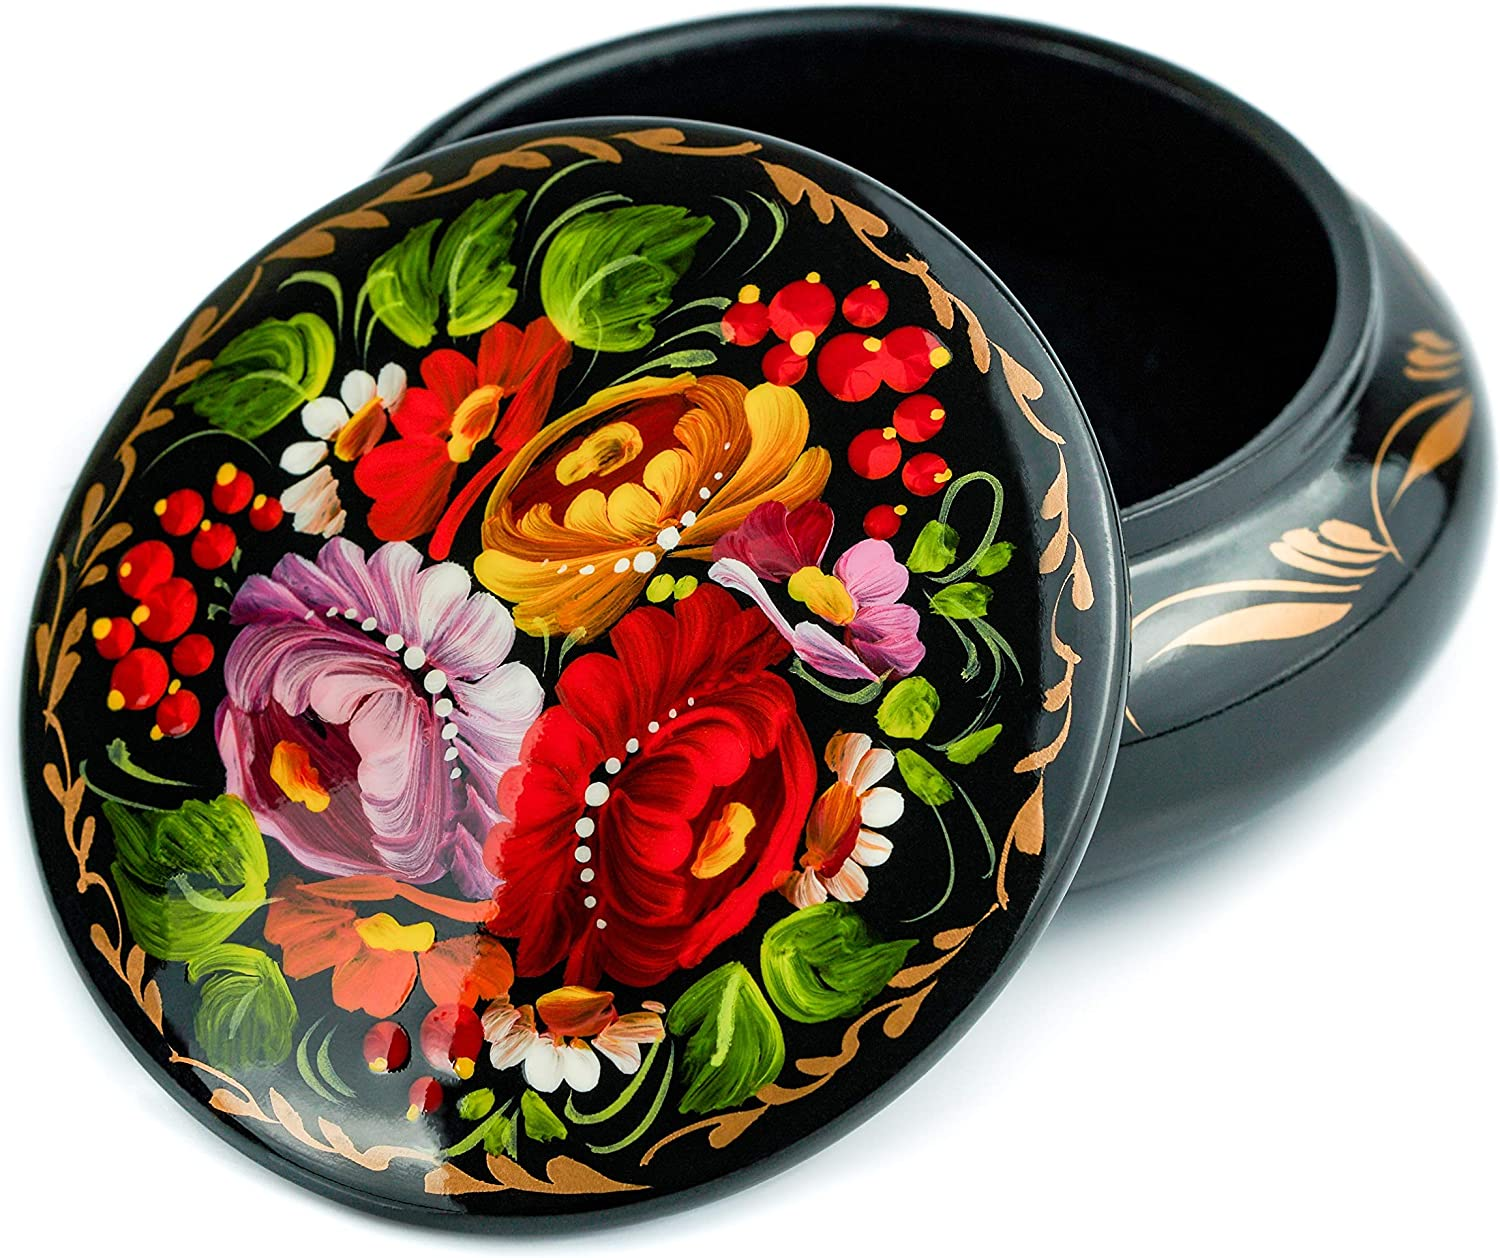 Small Lacquer Jewelry Box for Earrings, Necklace, Rings, Hand Painted Ethnic Floral Pattern Wooden Case